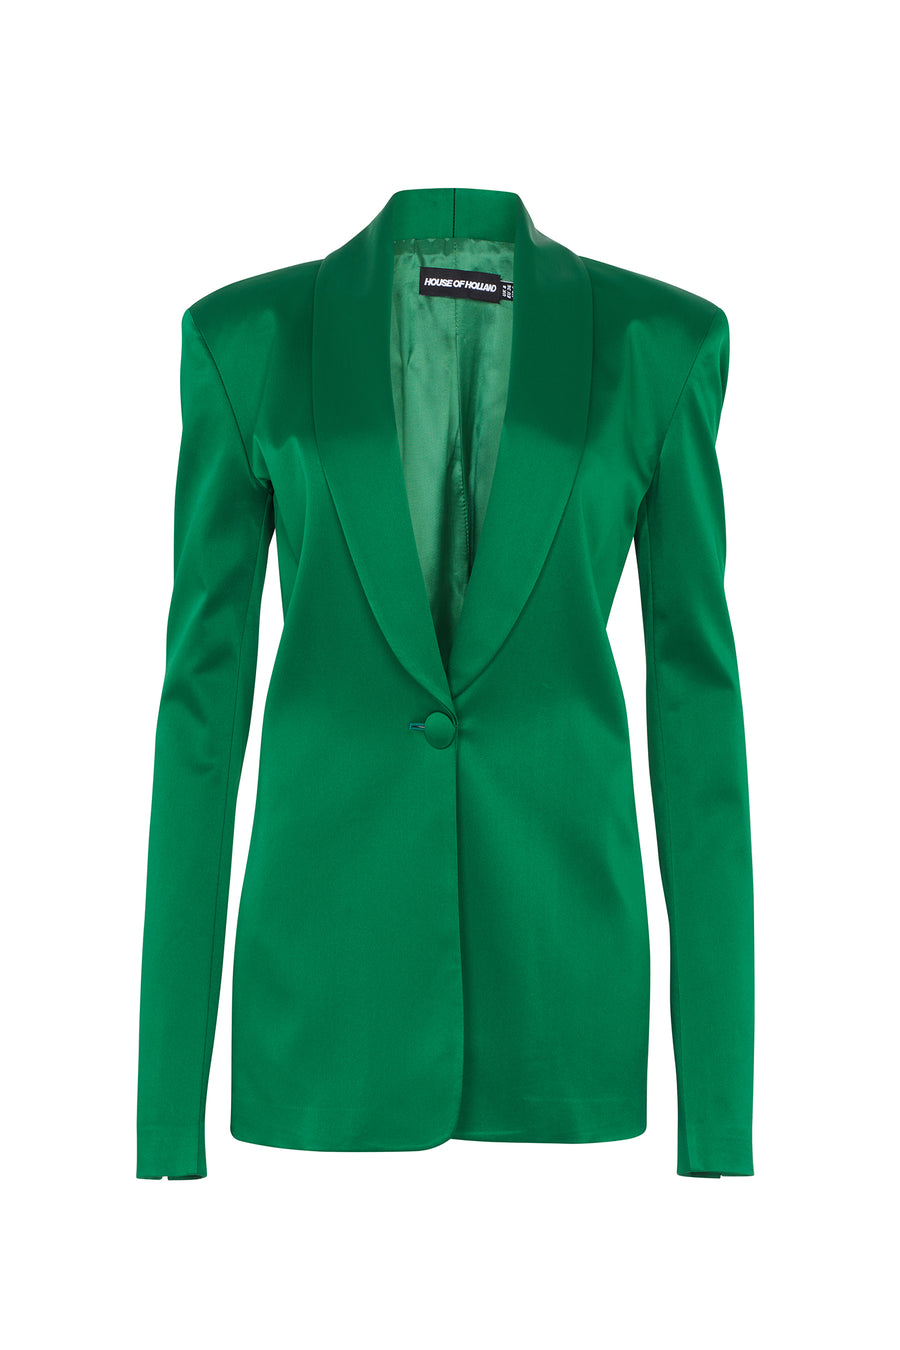 Grüne Satin Tailored Jacke